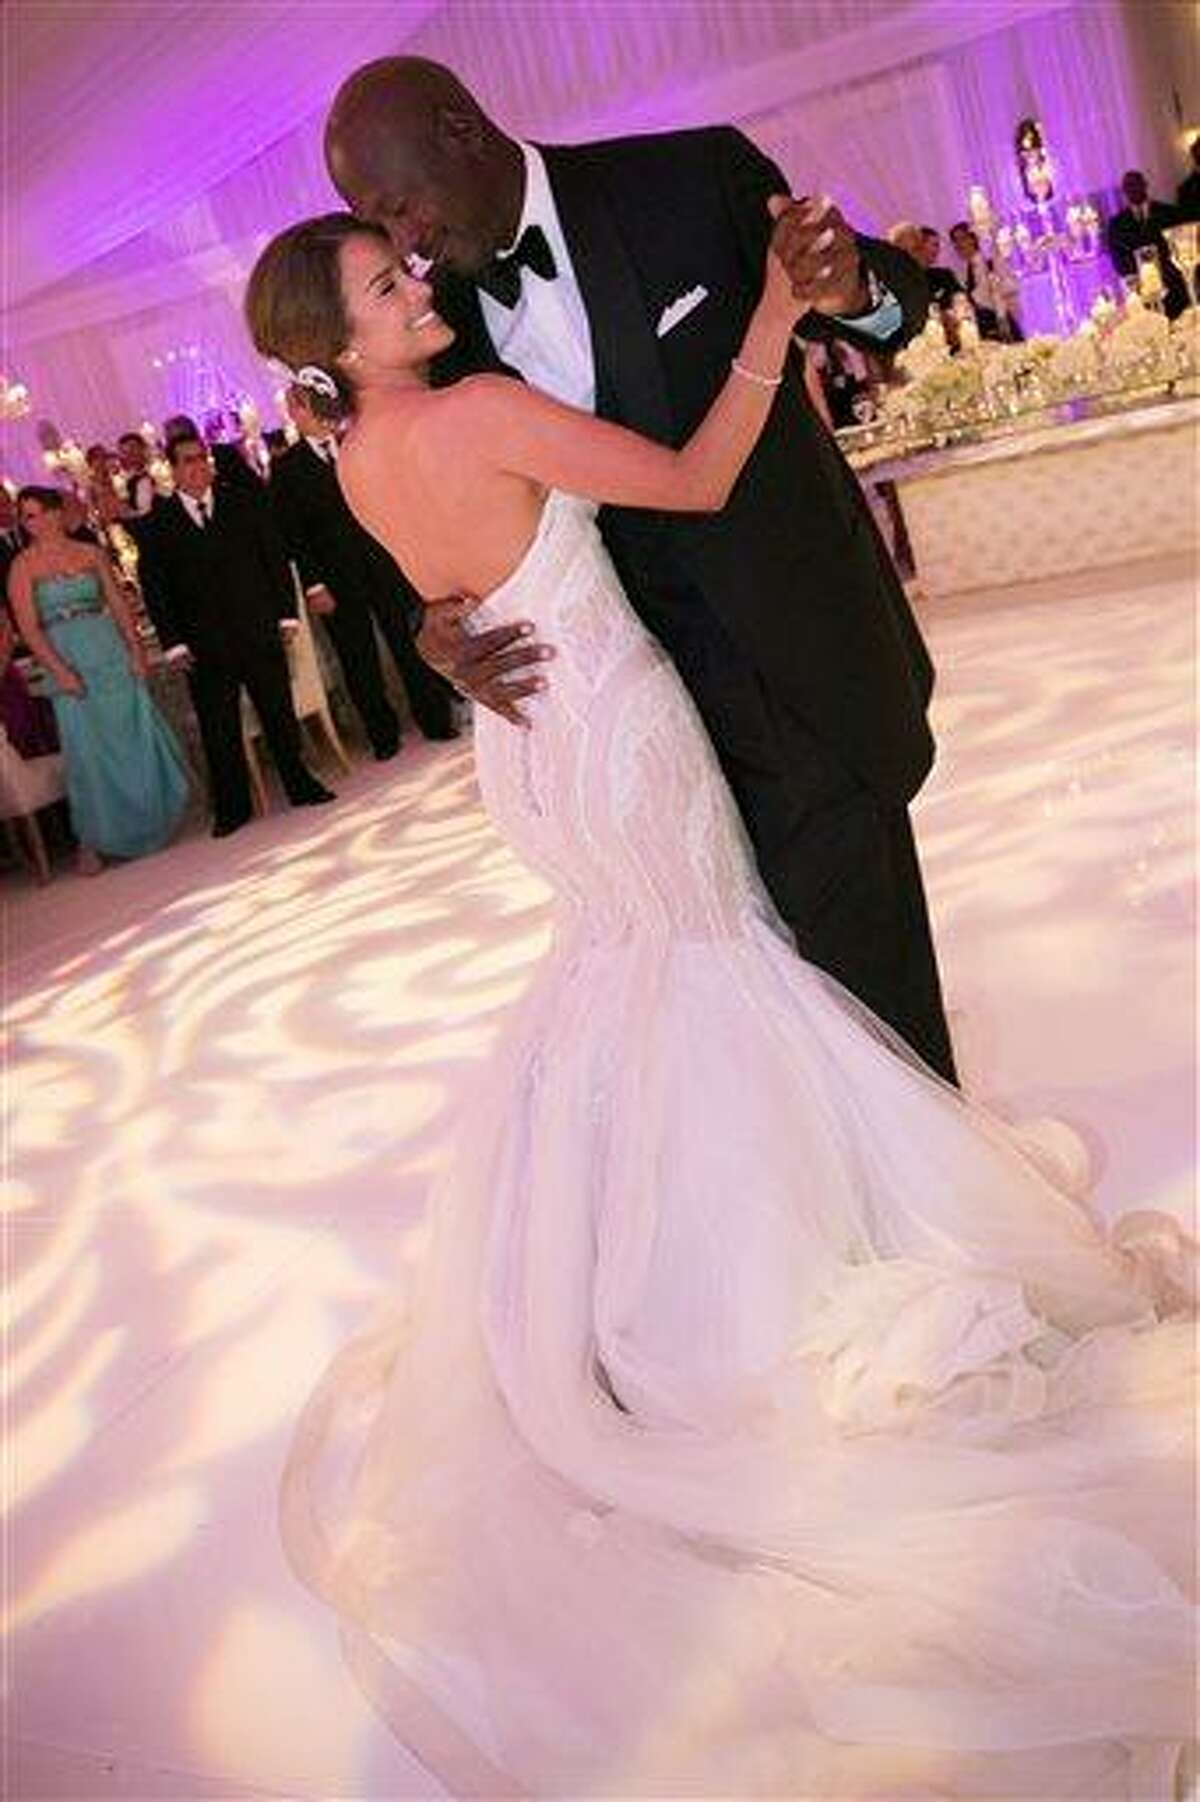 In this Saturday, April 27, 2013, photo provided by JUMP.DC, Charlotte Bobcats owner Michael Jordan dances with his bride Yvette Prieto during their wedding reception at the Bear's Club in Jupiter, Fla. The wedding took place at the Episcopal Church of Bethesda-by-the-Sea with more than 300 guests in attendance, including Tiger Woods, Patrick Ewing and Ahmad Rashad, Jordan's manager Estee Portnoy told The Associated Press Sunday. (AP Photo/JUMP.DC, Joe Buissink)